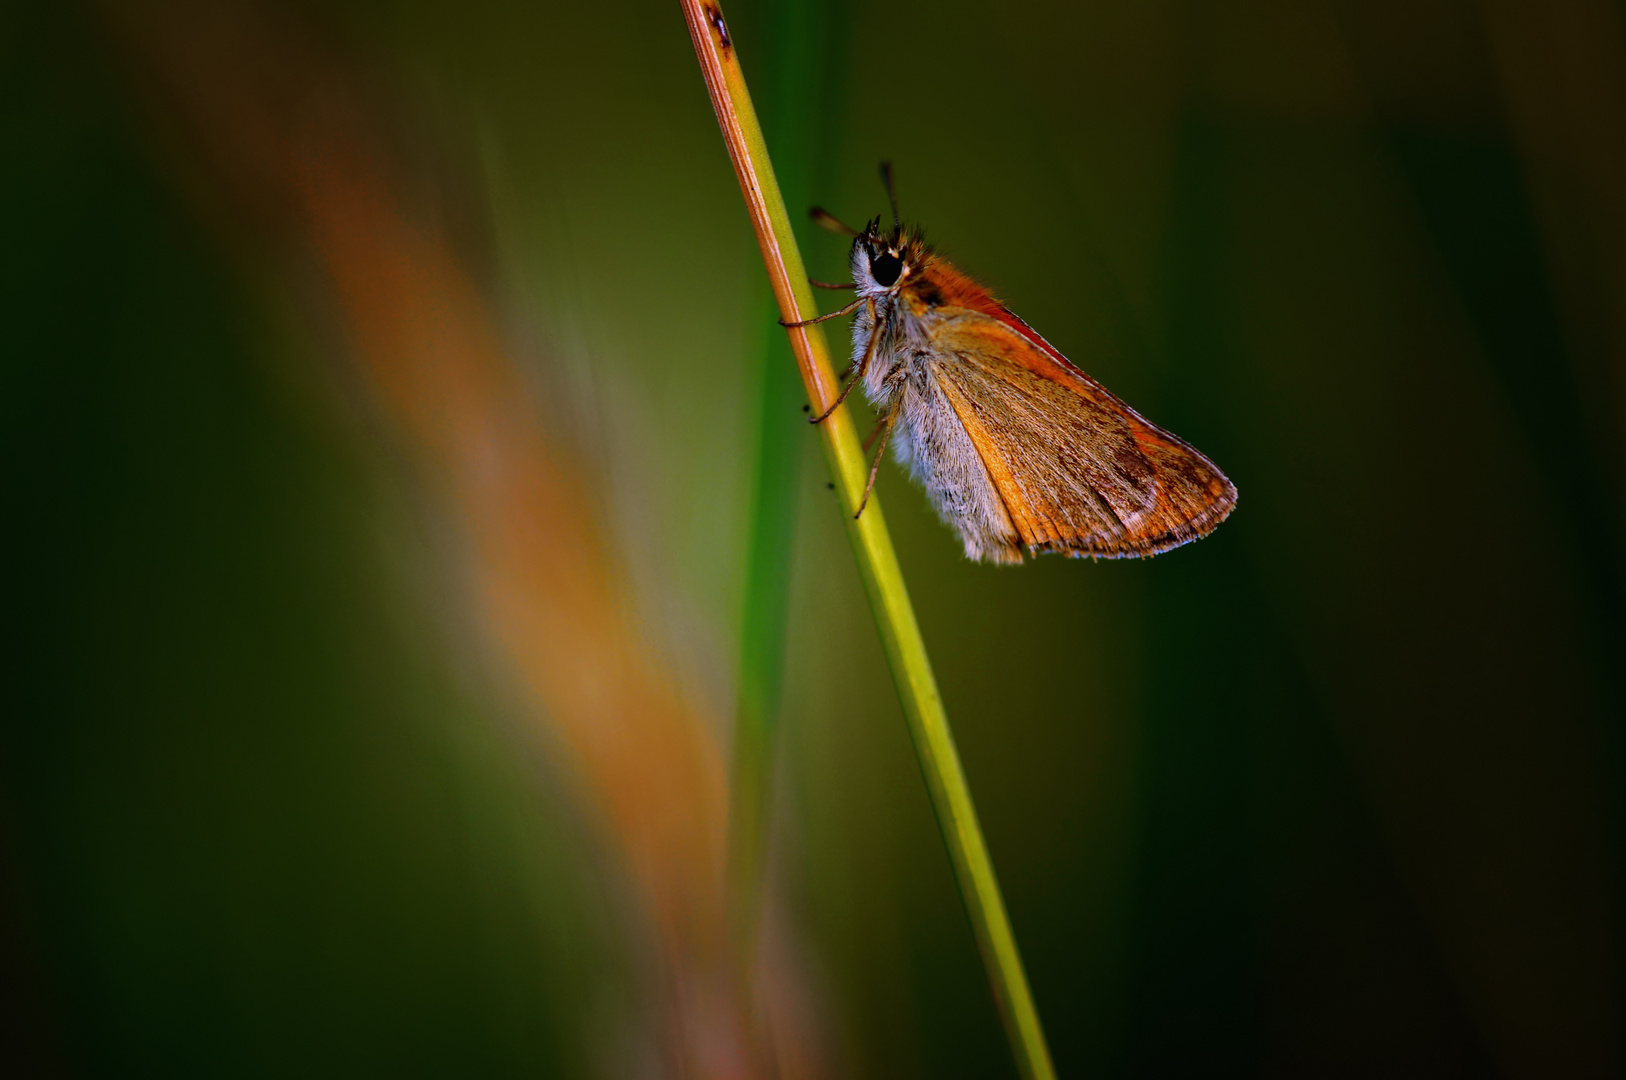 A Little Skipper